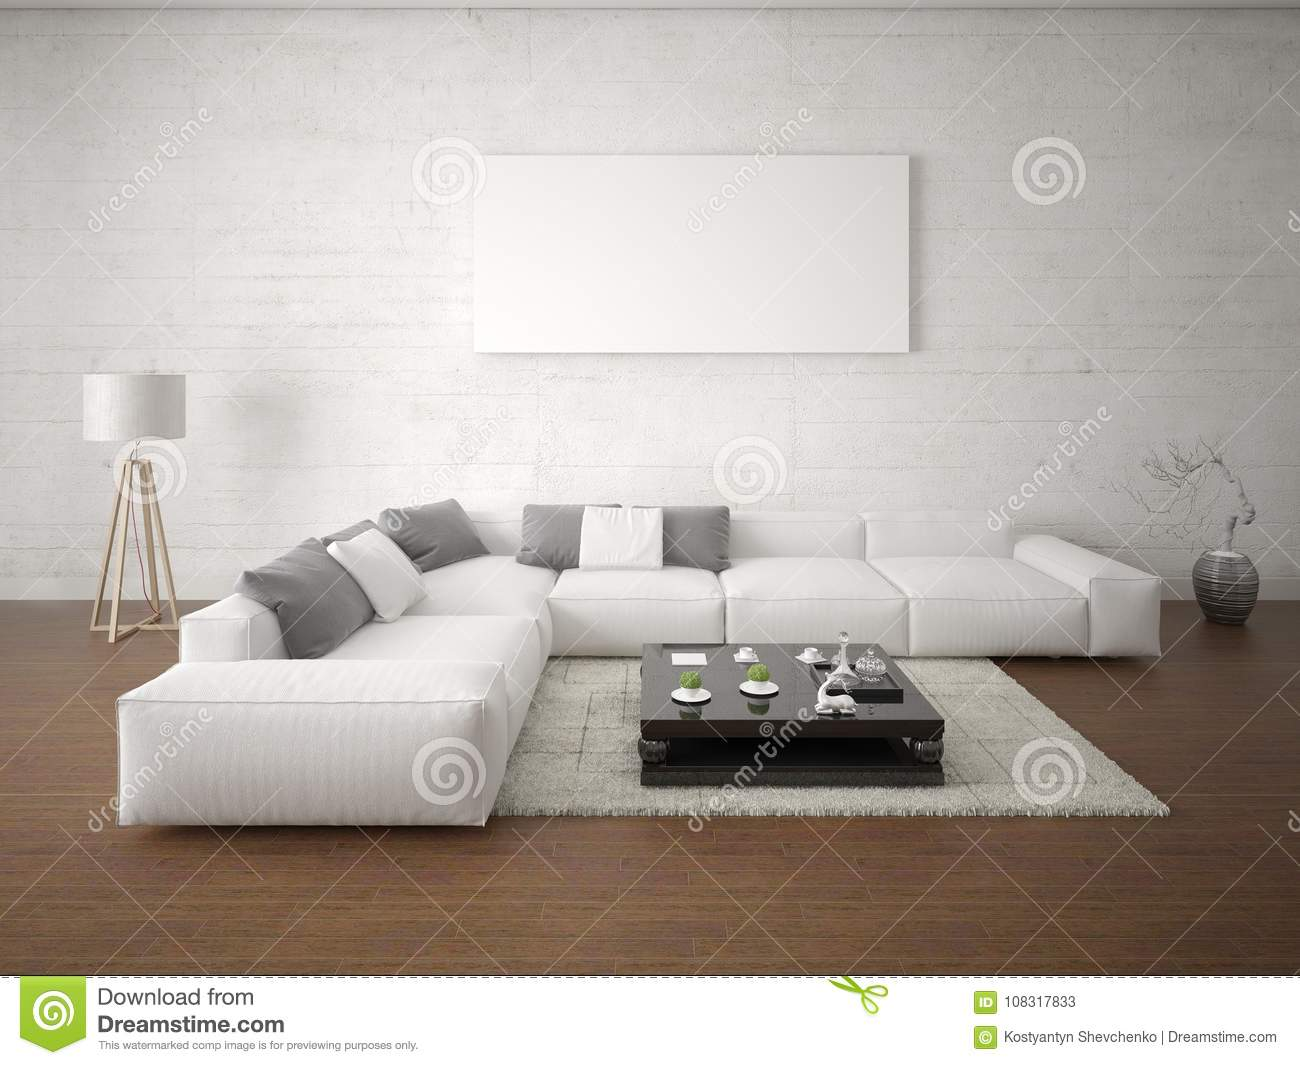 Good Mock Up Poster Spacious Living Room With Corner Light Sofa.